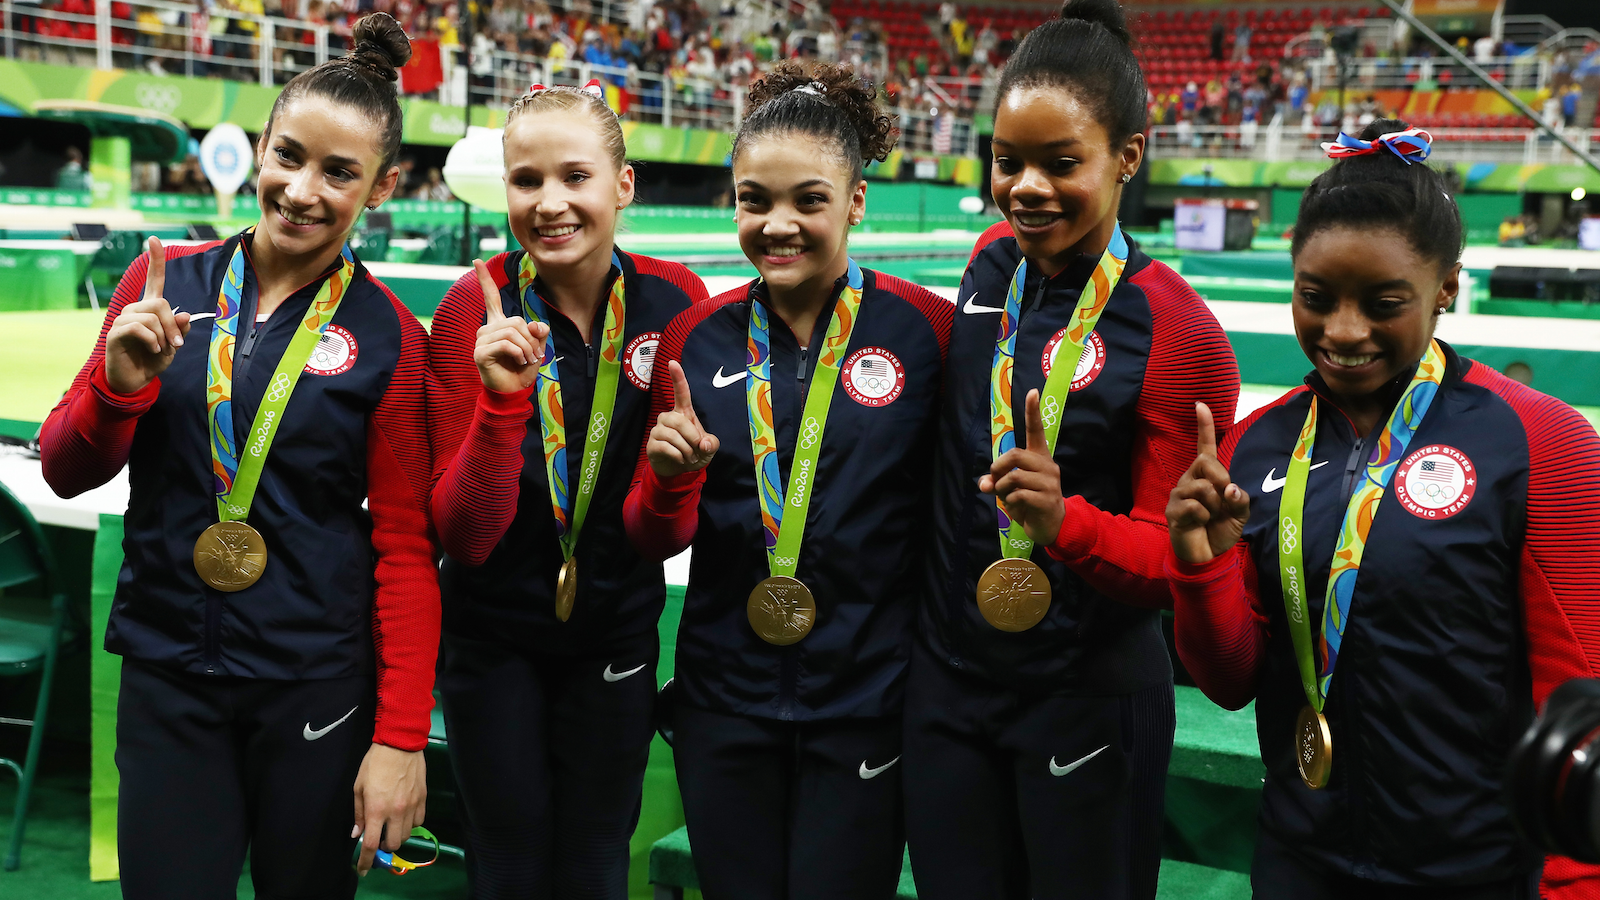 Team Usa A K A The Final Five Win Their Expected Gold